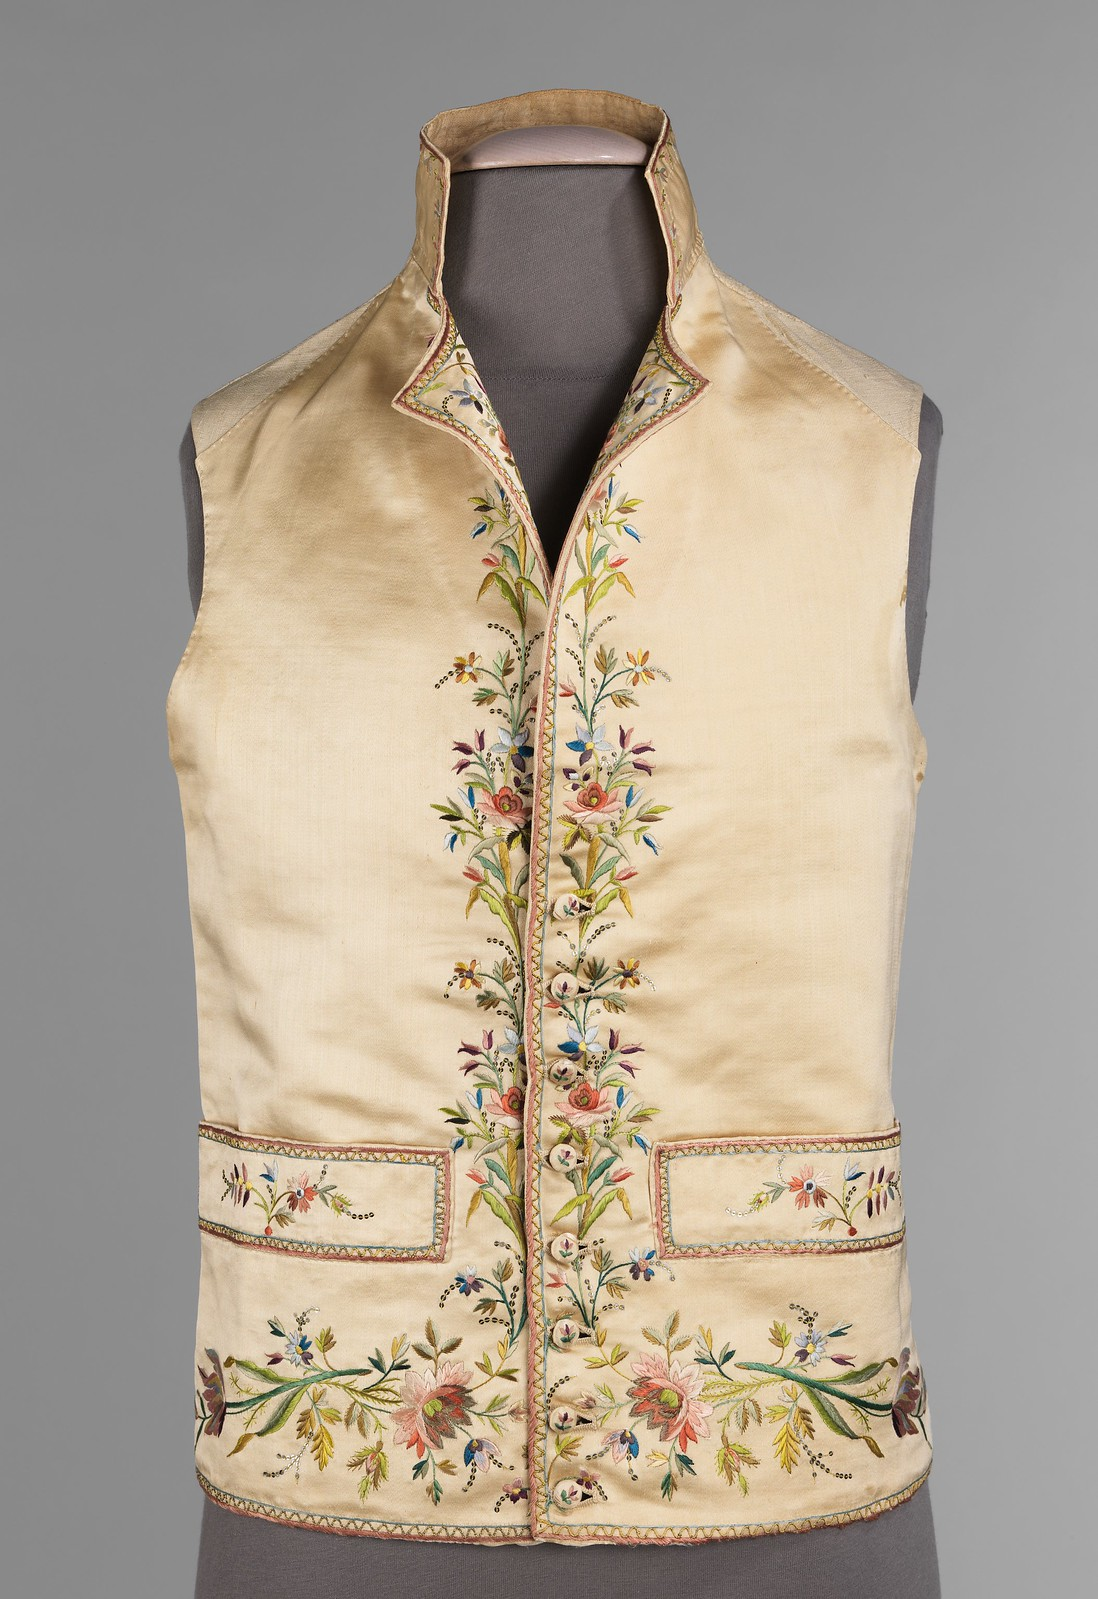 1800. French. silk, linen, metal, cotton. metmuseum